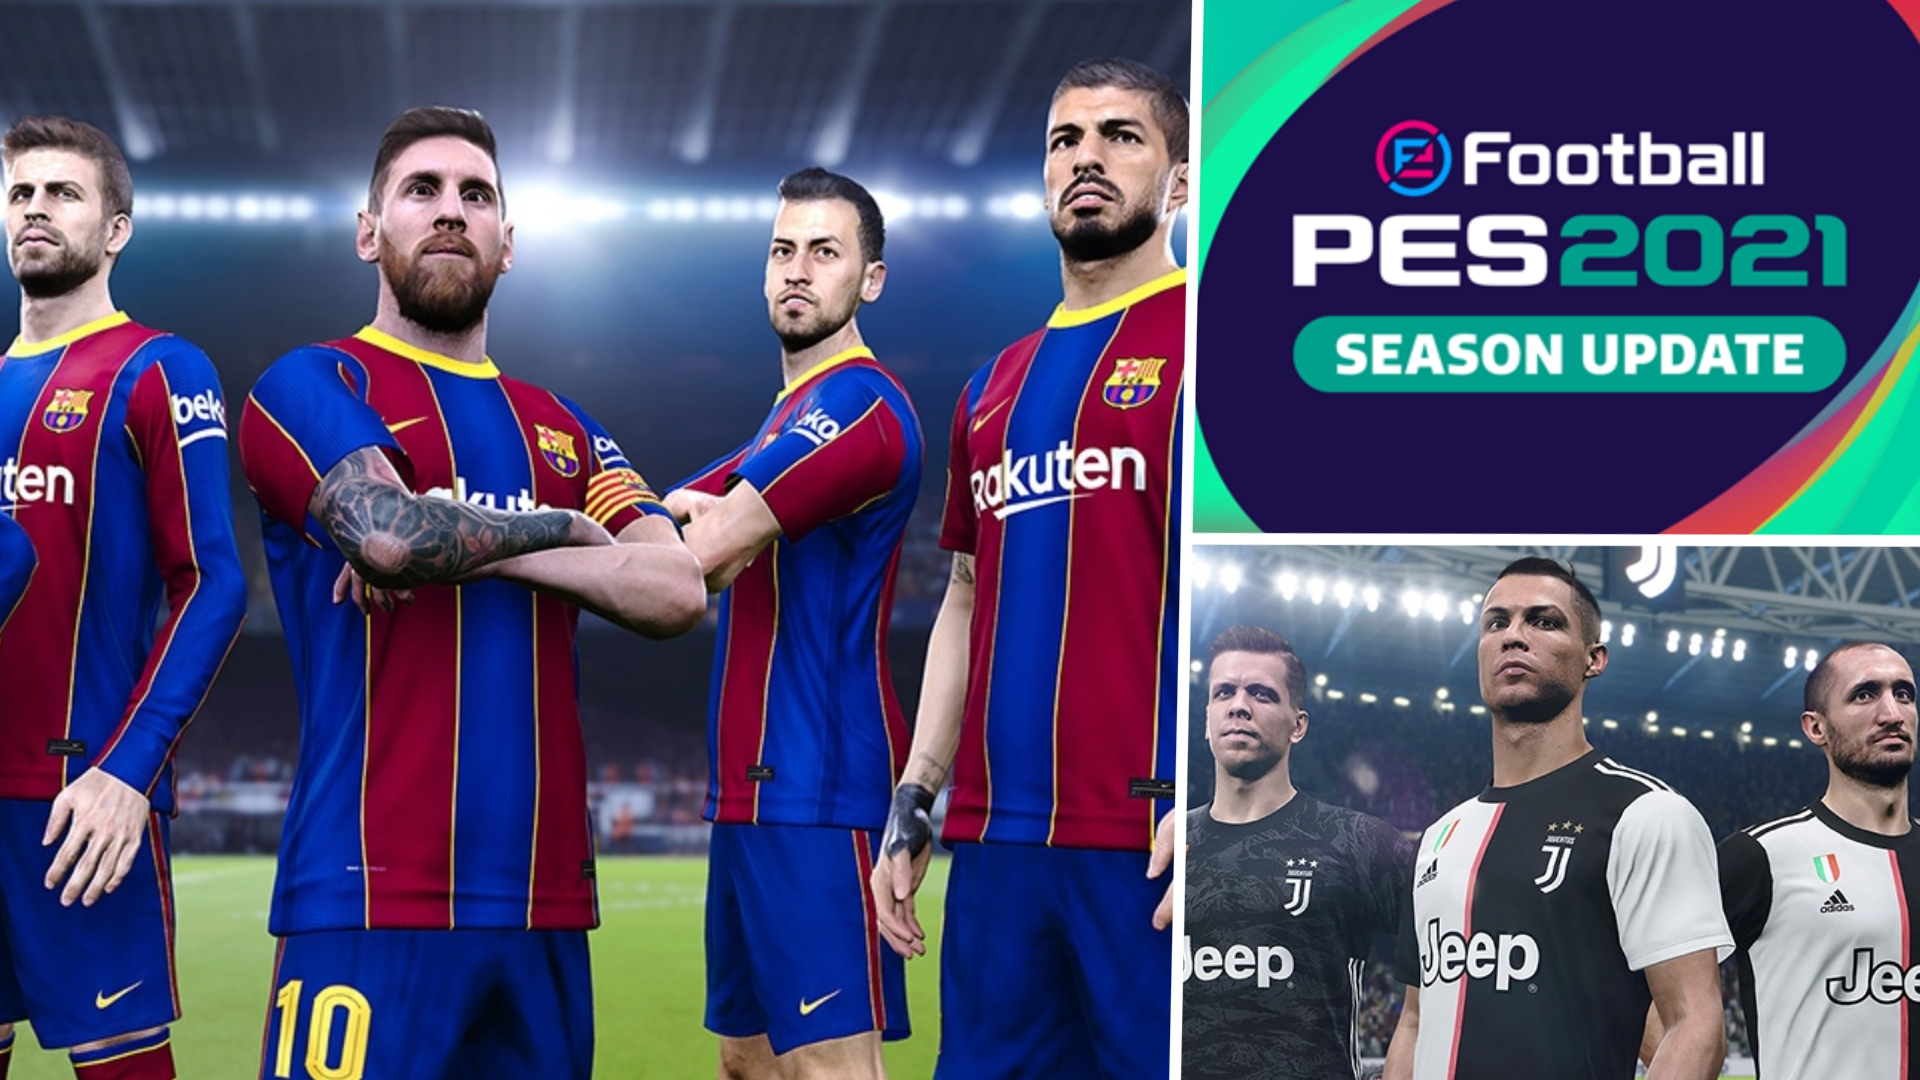 Pes 2021 Release Dates Price Club Licences New Features And Next Gen News Goal Com